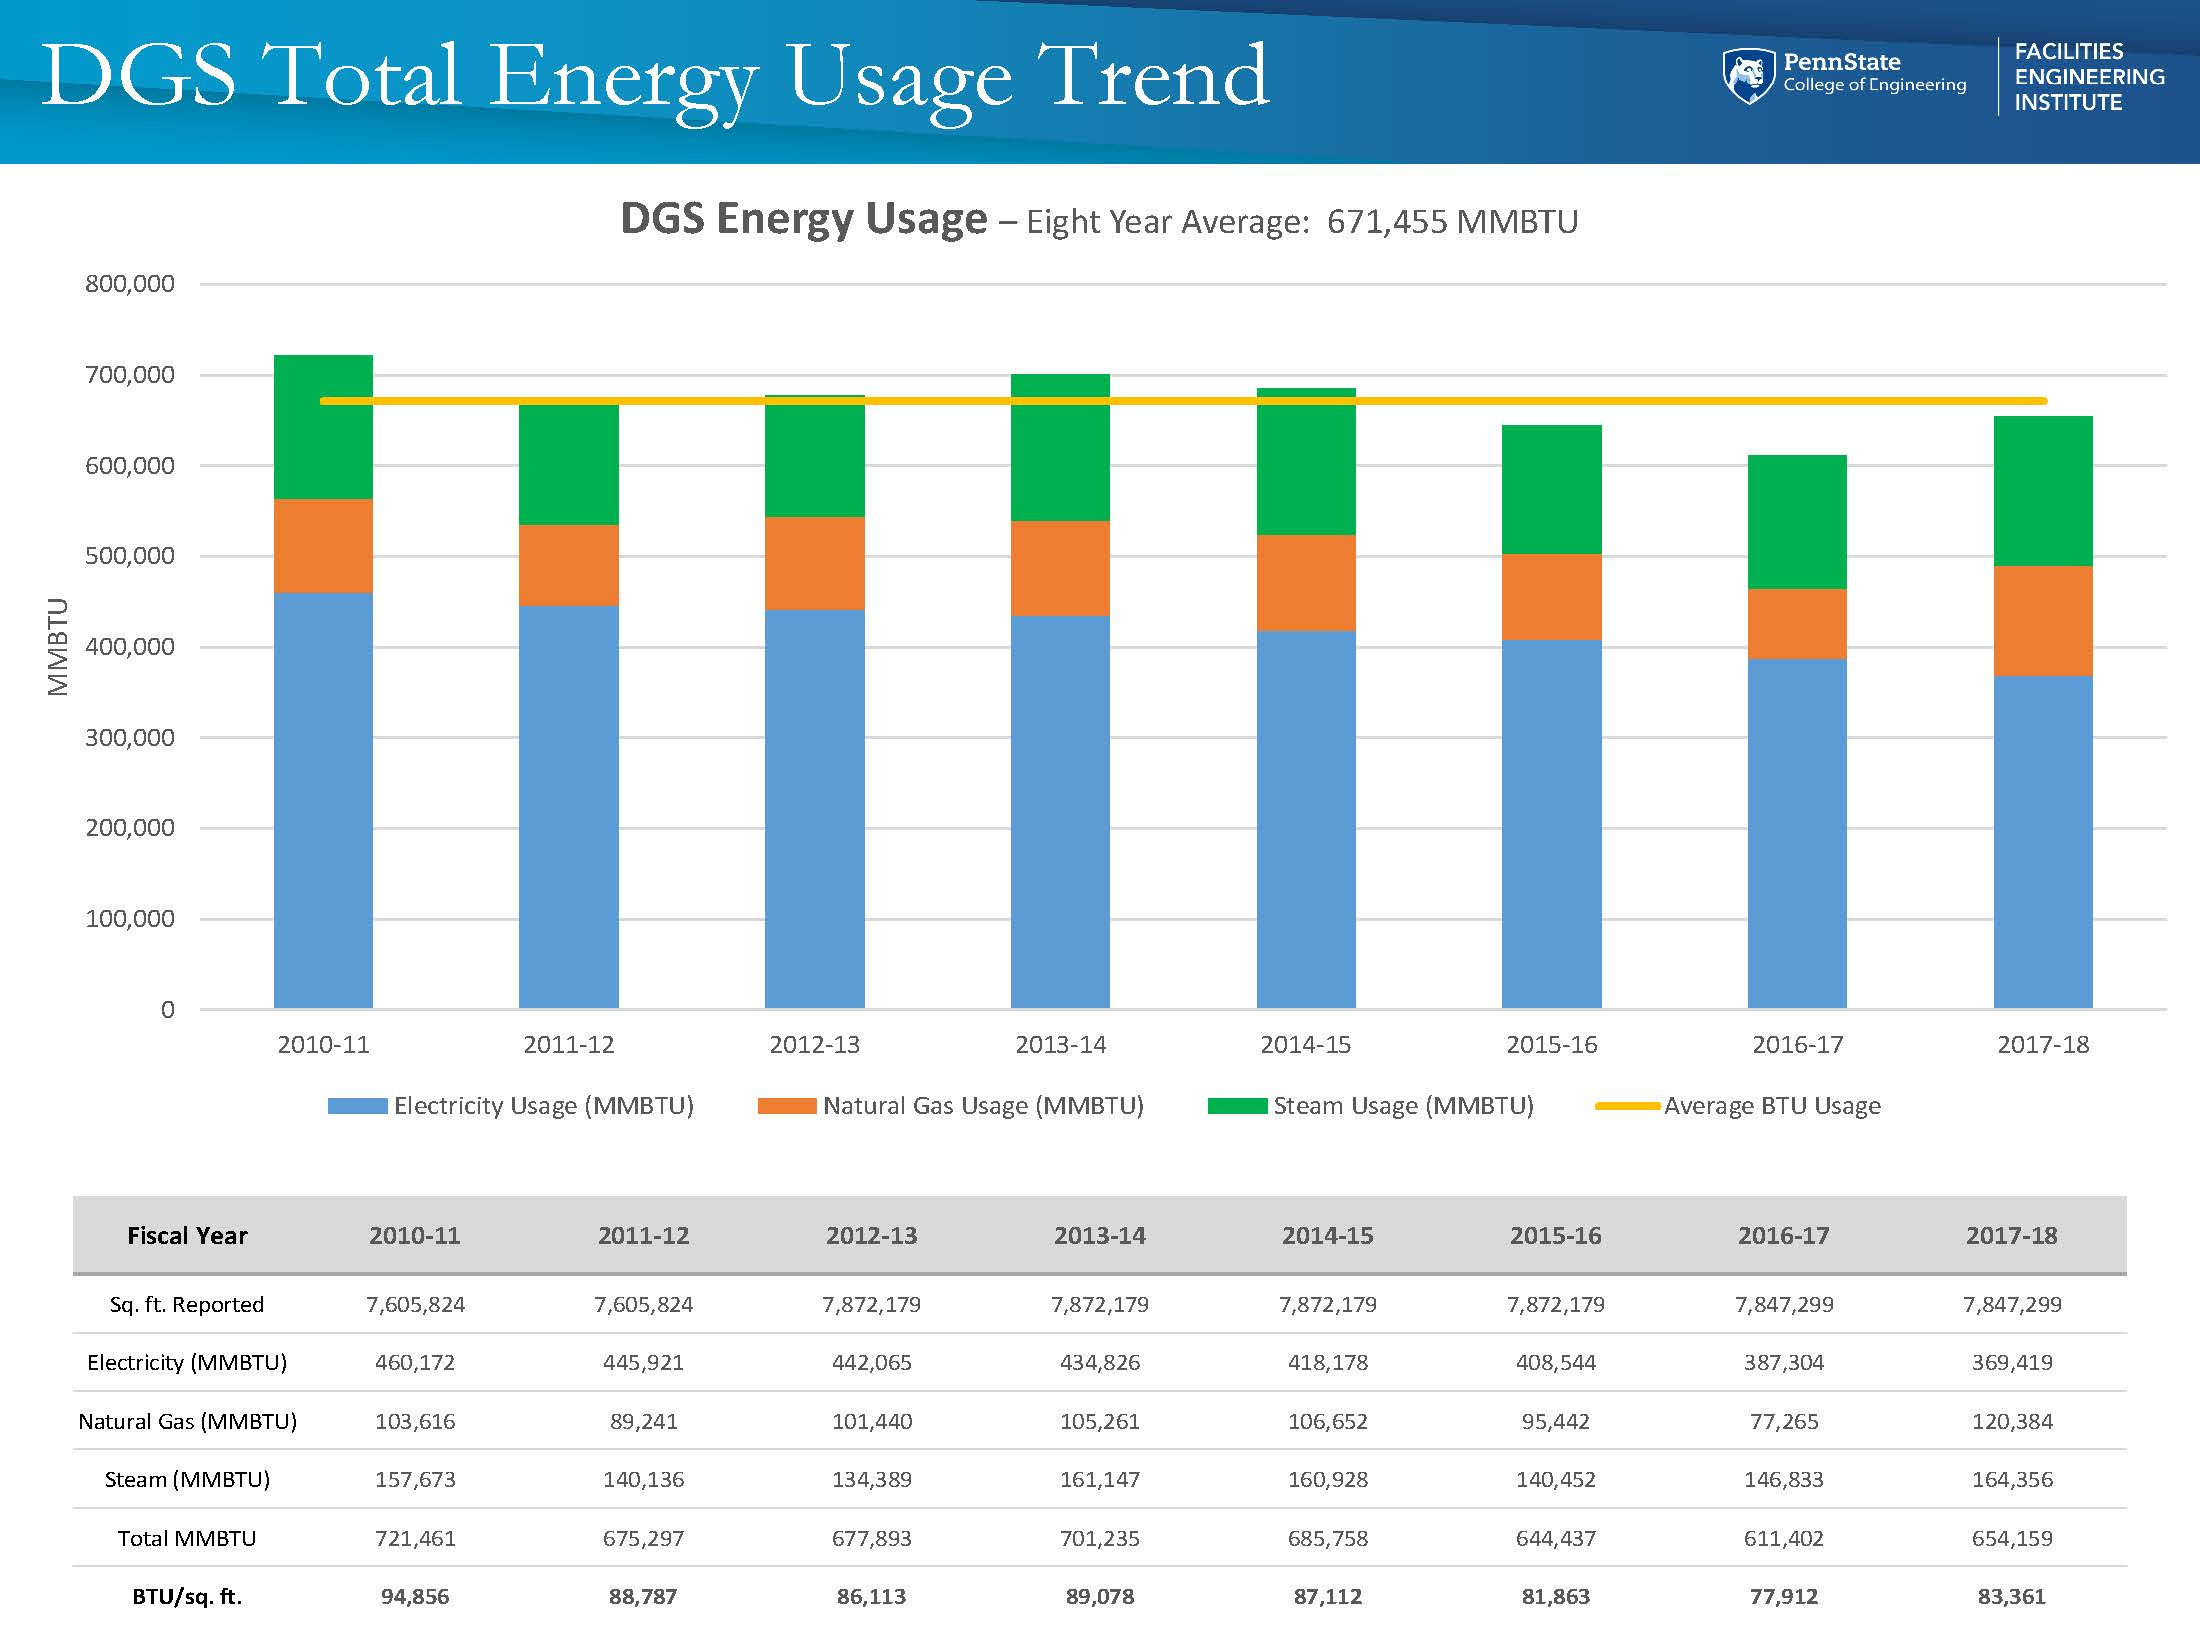 Energy - DGS Total Energy Usage Trend.jpg